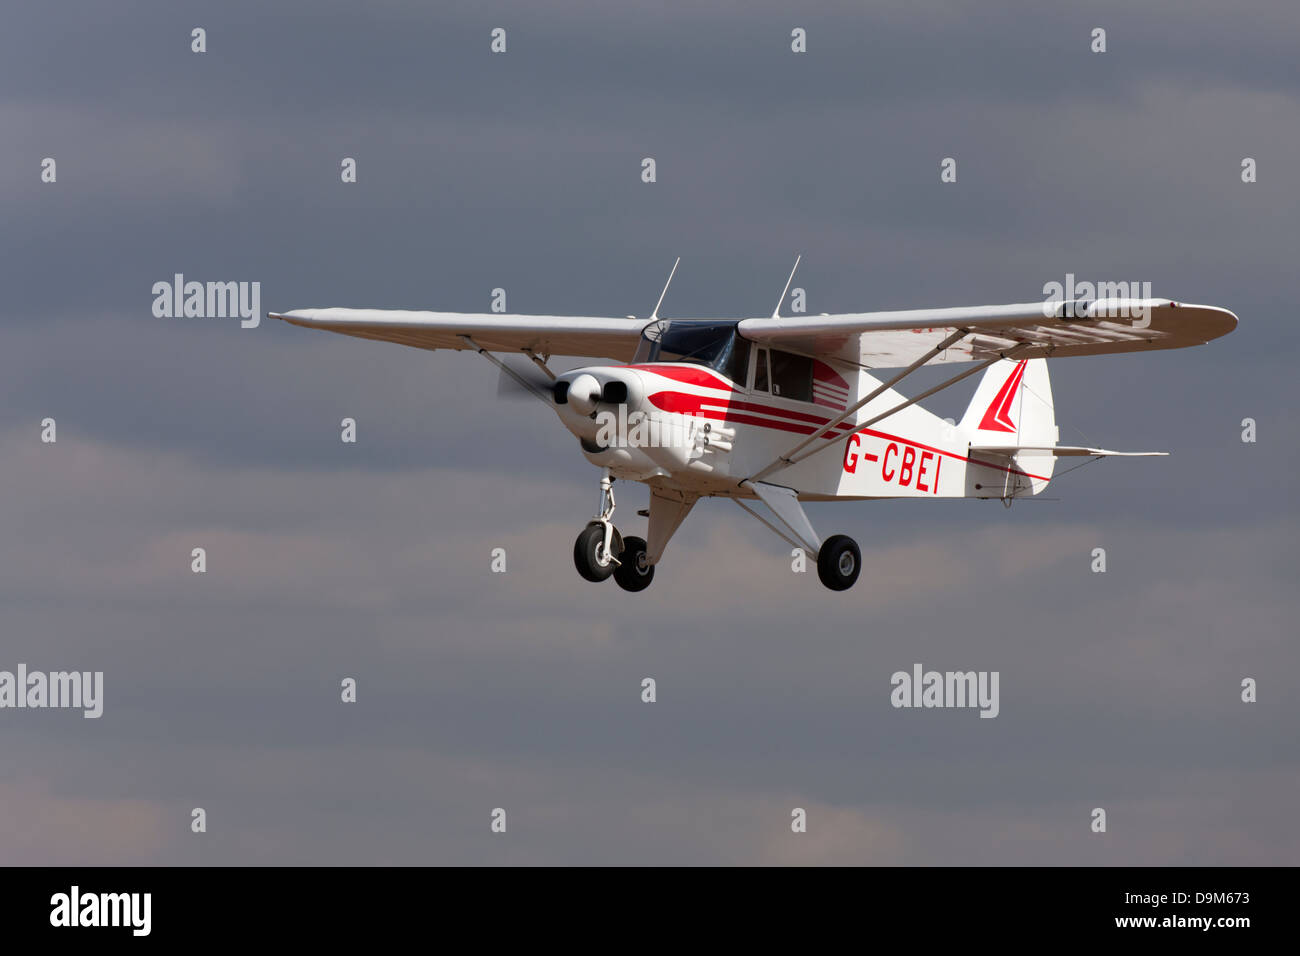 Piper PA-22-108 Colt G-CBEI in flight on final approach to